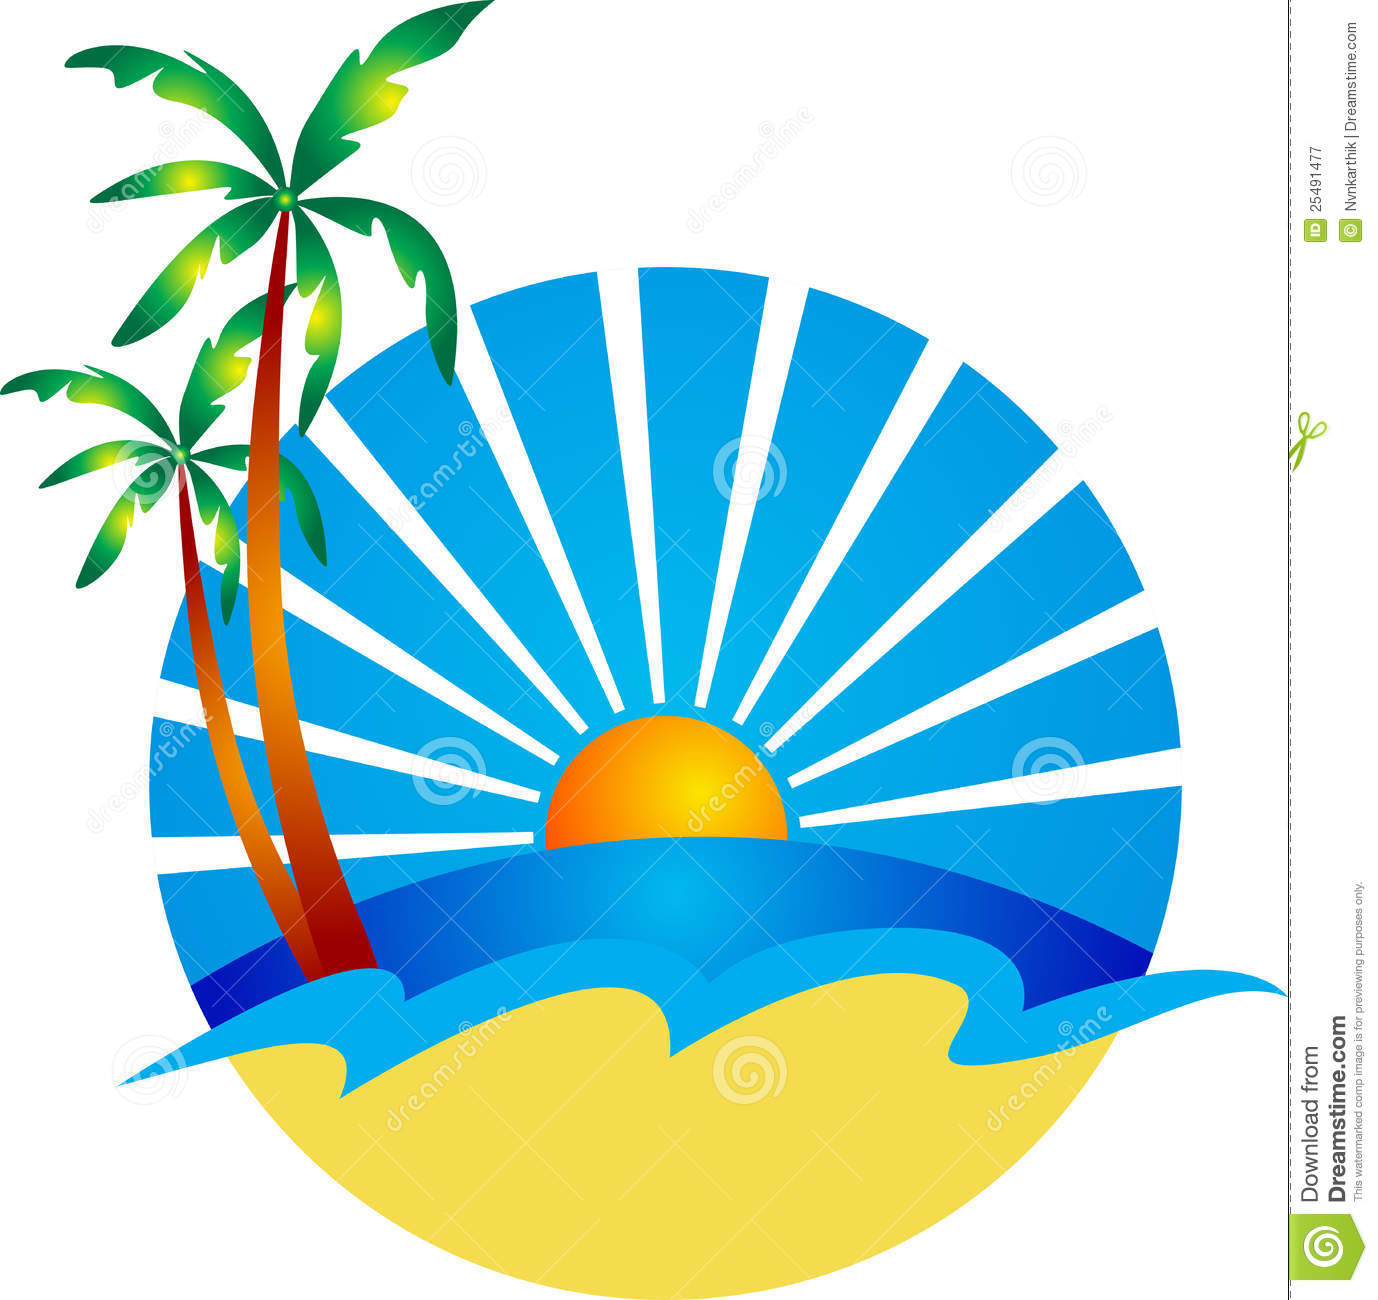 Beach Logo Royalty Free Stock Photography - Image: 25491477